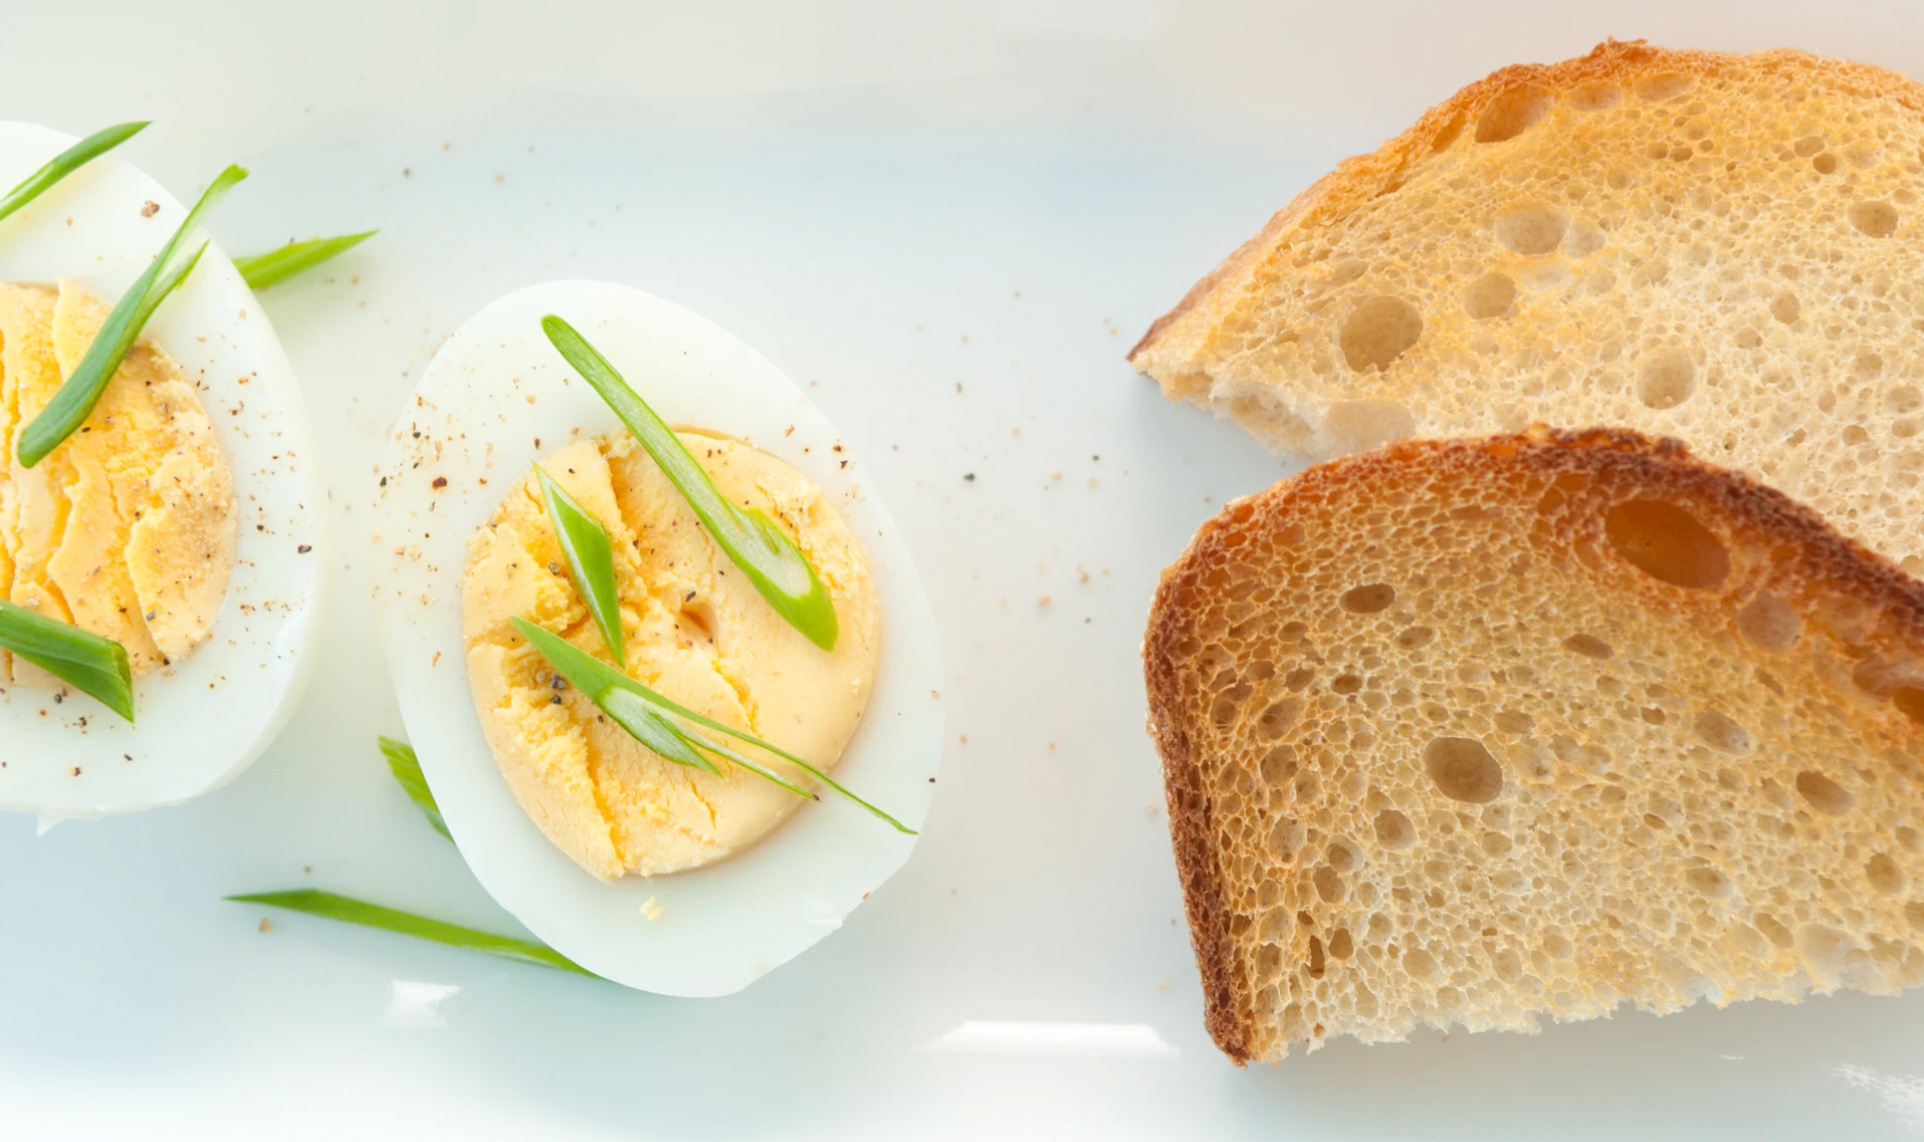 A plate with a piece of toast and an egg